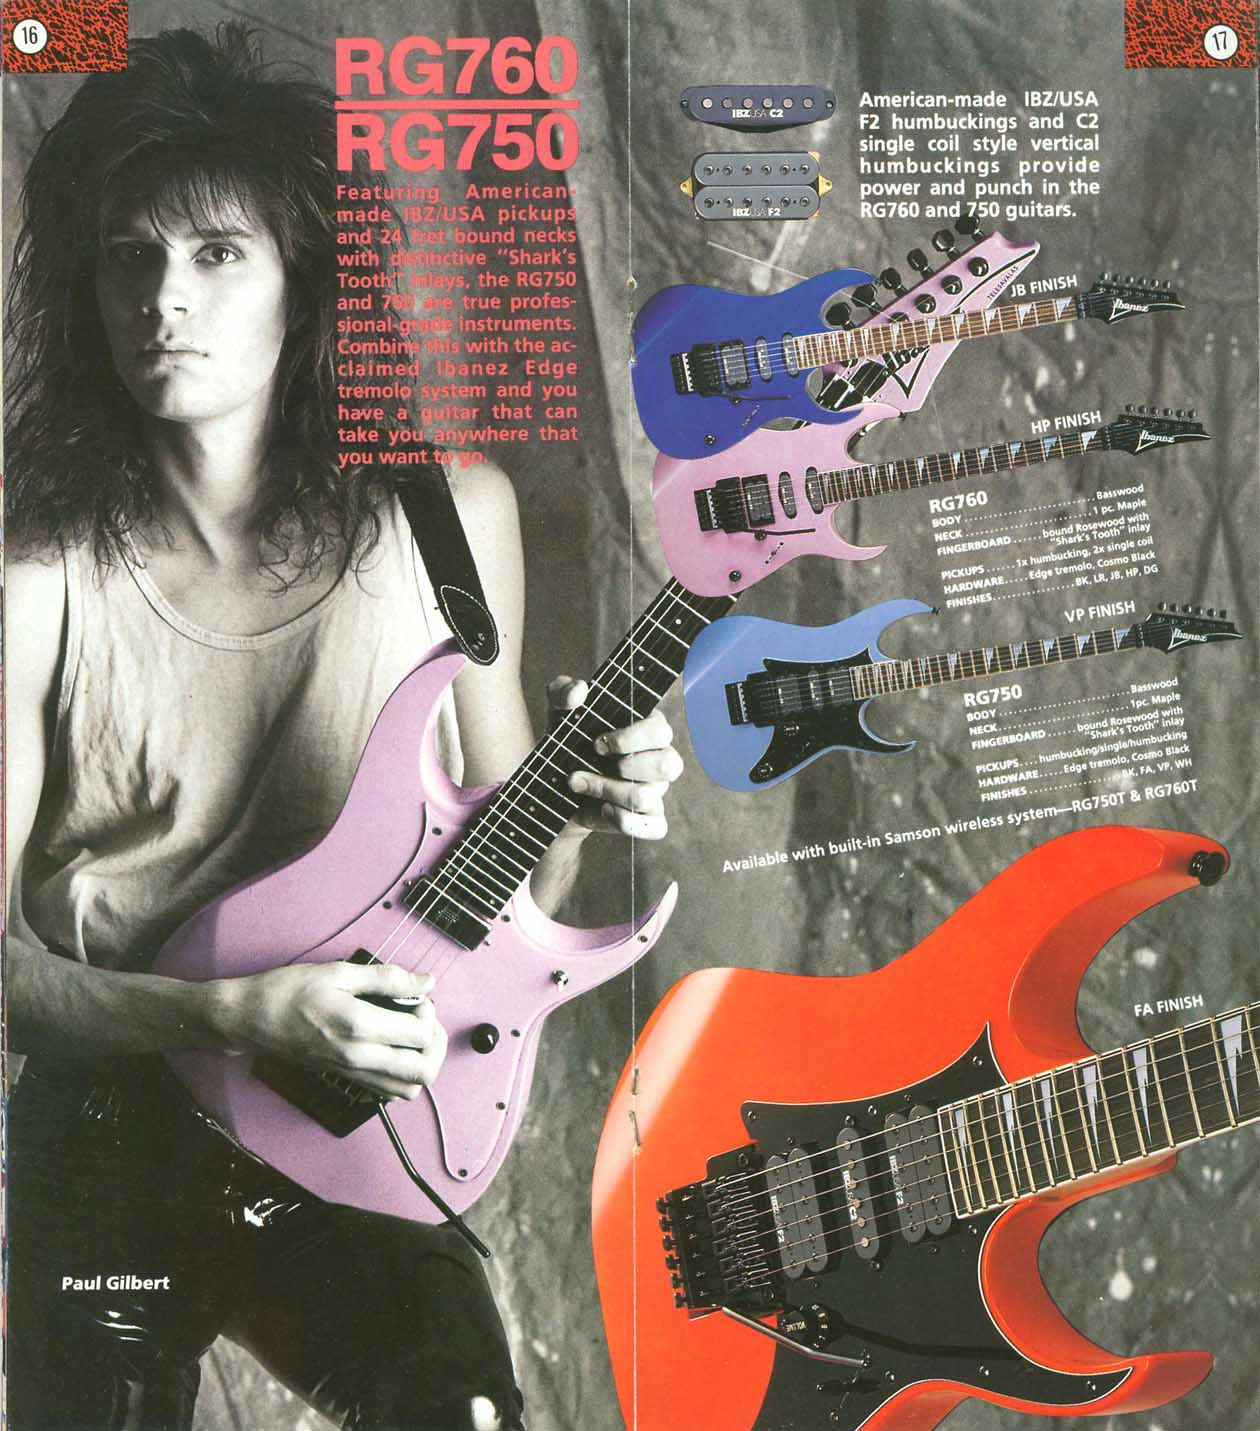 i hear paul gilbert used to use the custom in his ibanez